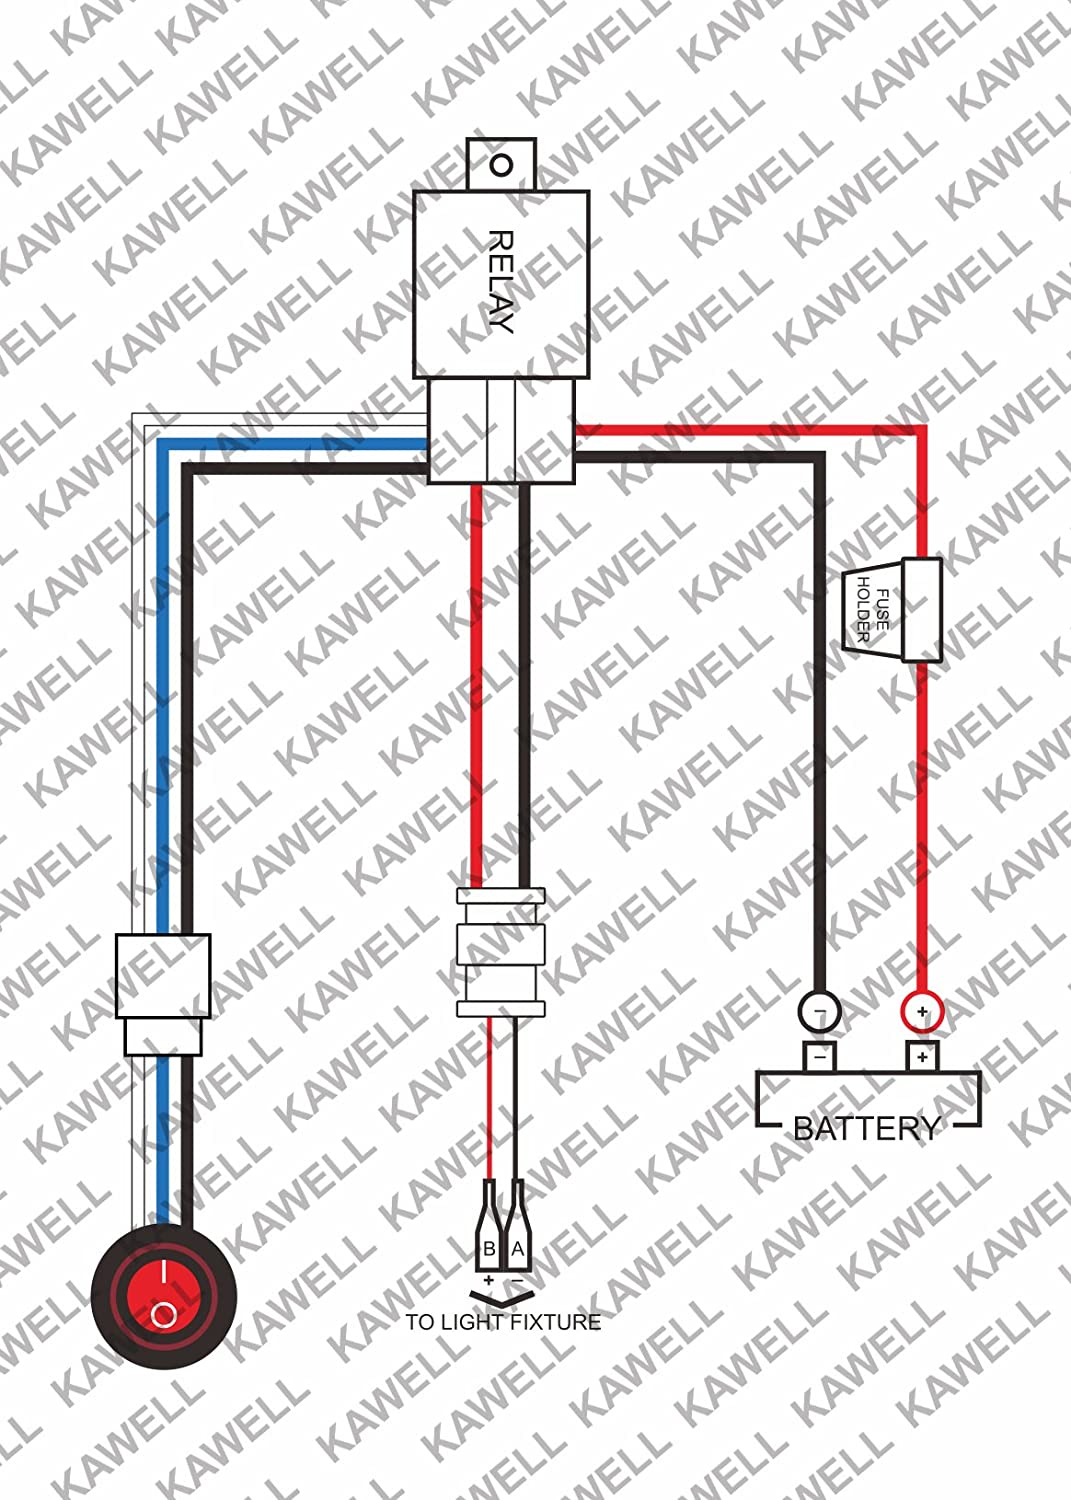 81HxPgq6f4L._SL1500_ captivating nilight wireing diagram led lights ideas best image